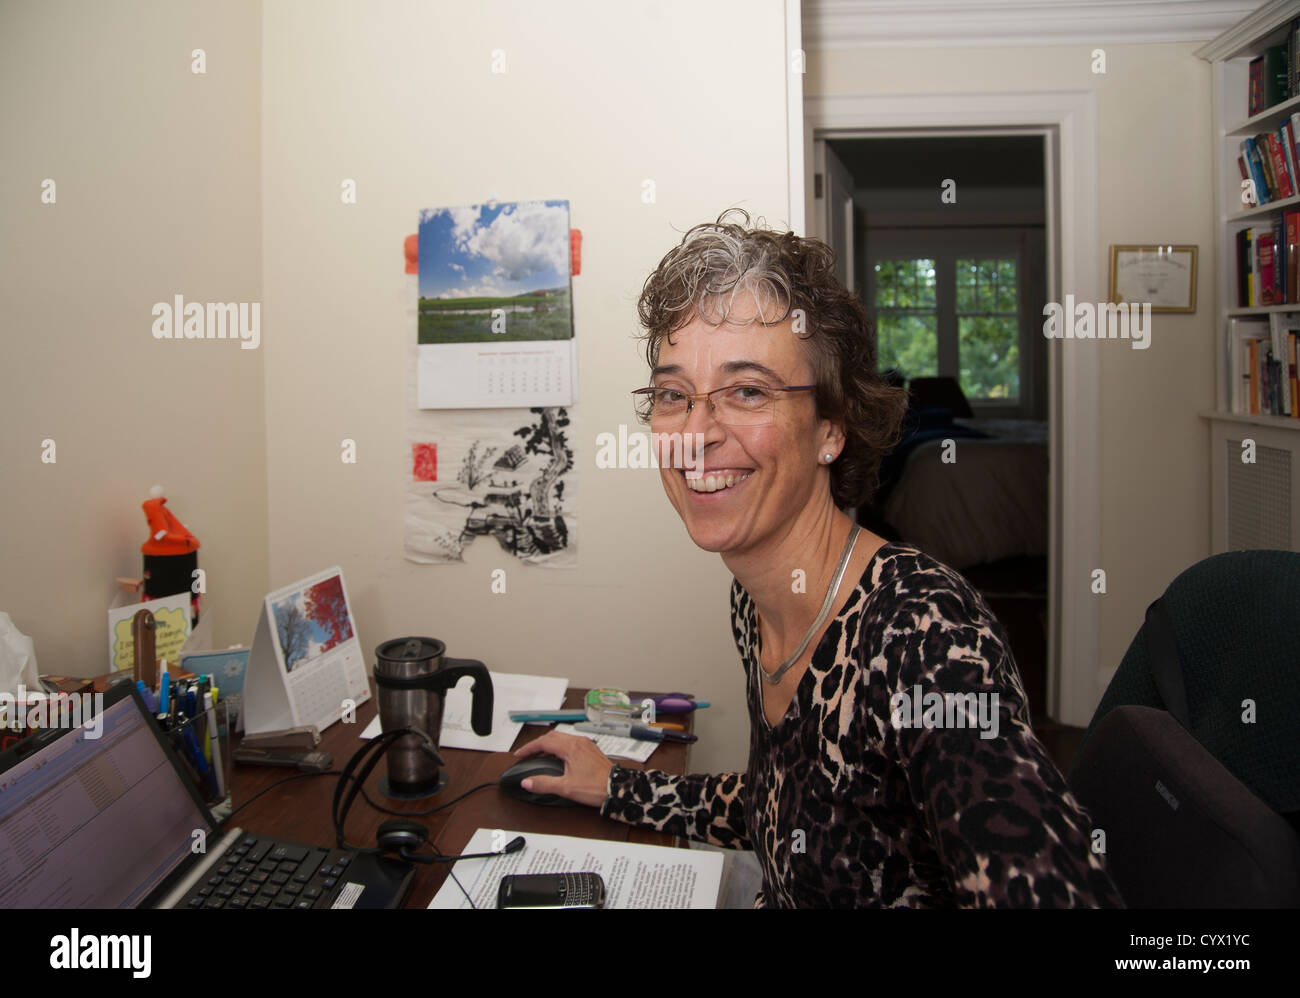 Woman sitting at her desk in home office working, looking at camera smiling - Stock Image